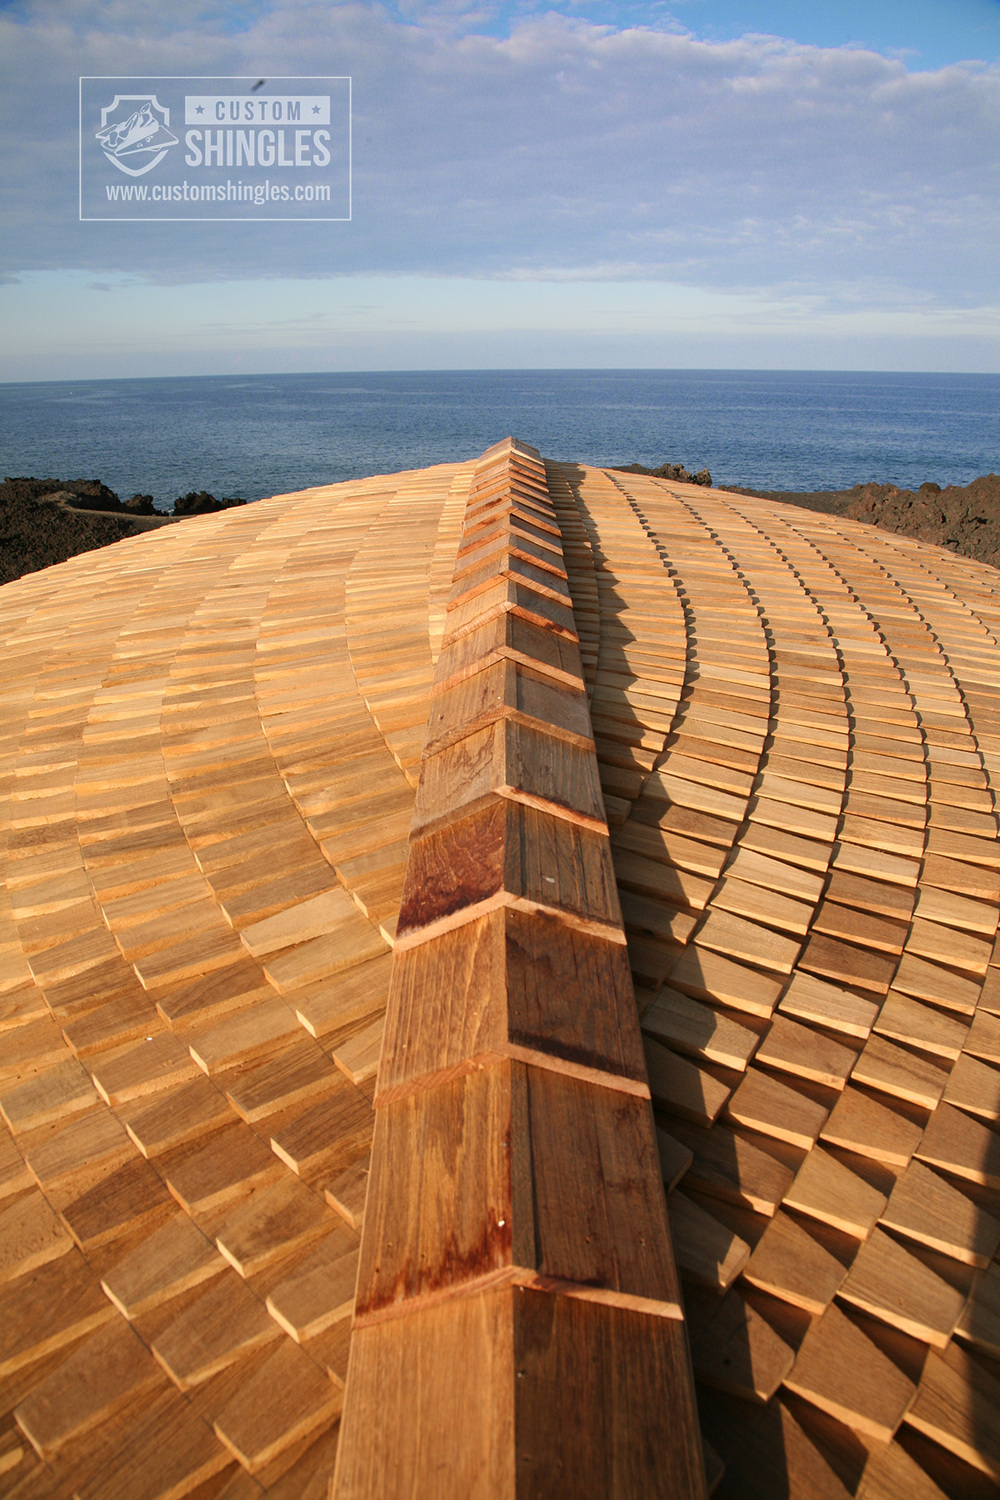 Kona,-Hawaii-Residence-with-Onsite-Steam-Bent-Teak-Shingles-(E) copy.jpg